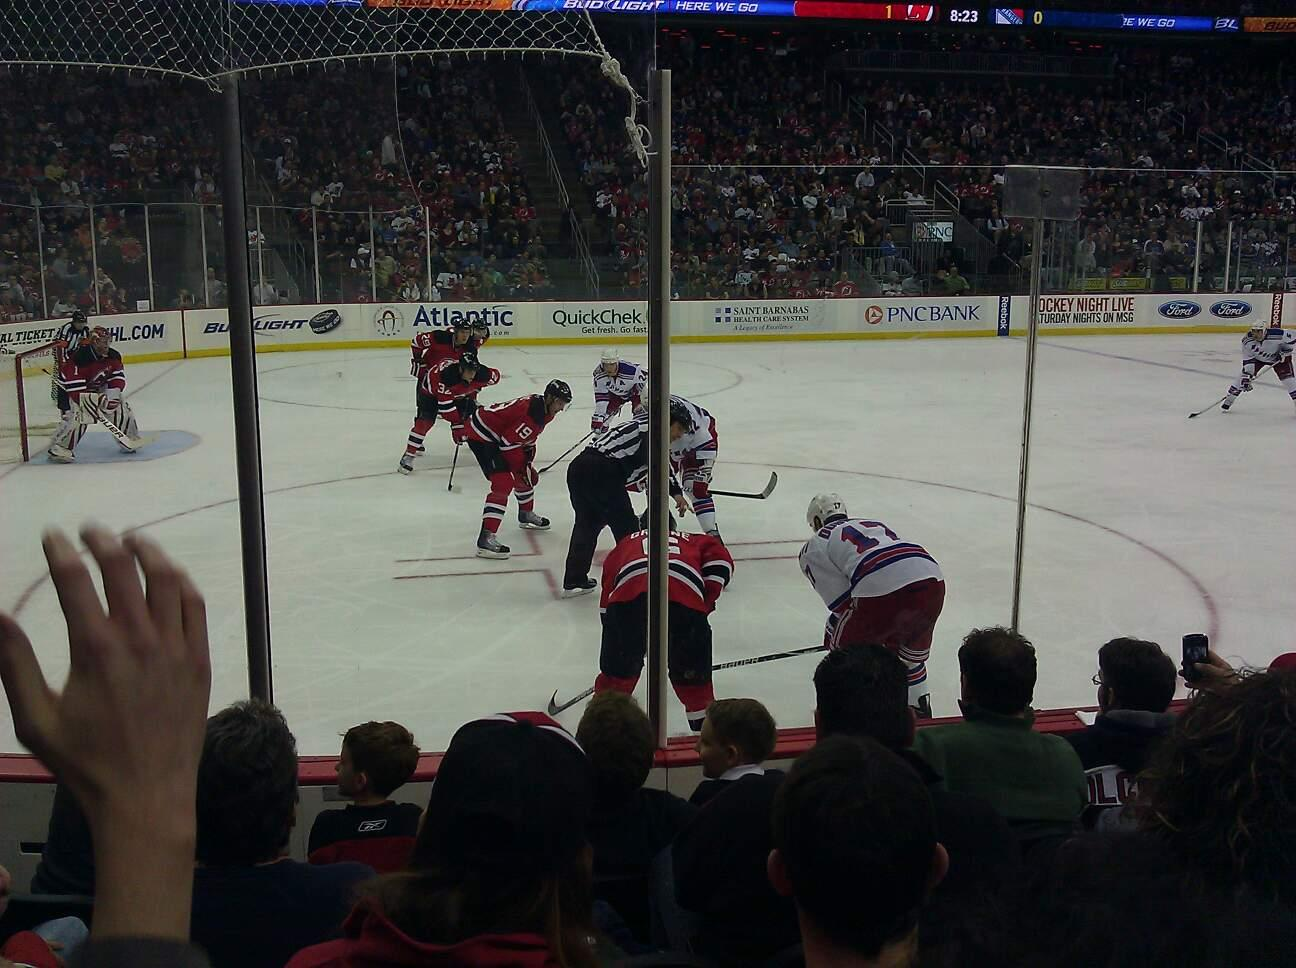 Prudential Center Section 6 Row 5 Seat 9